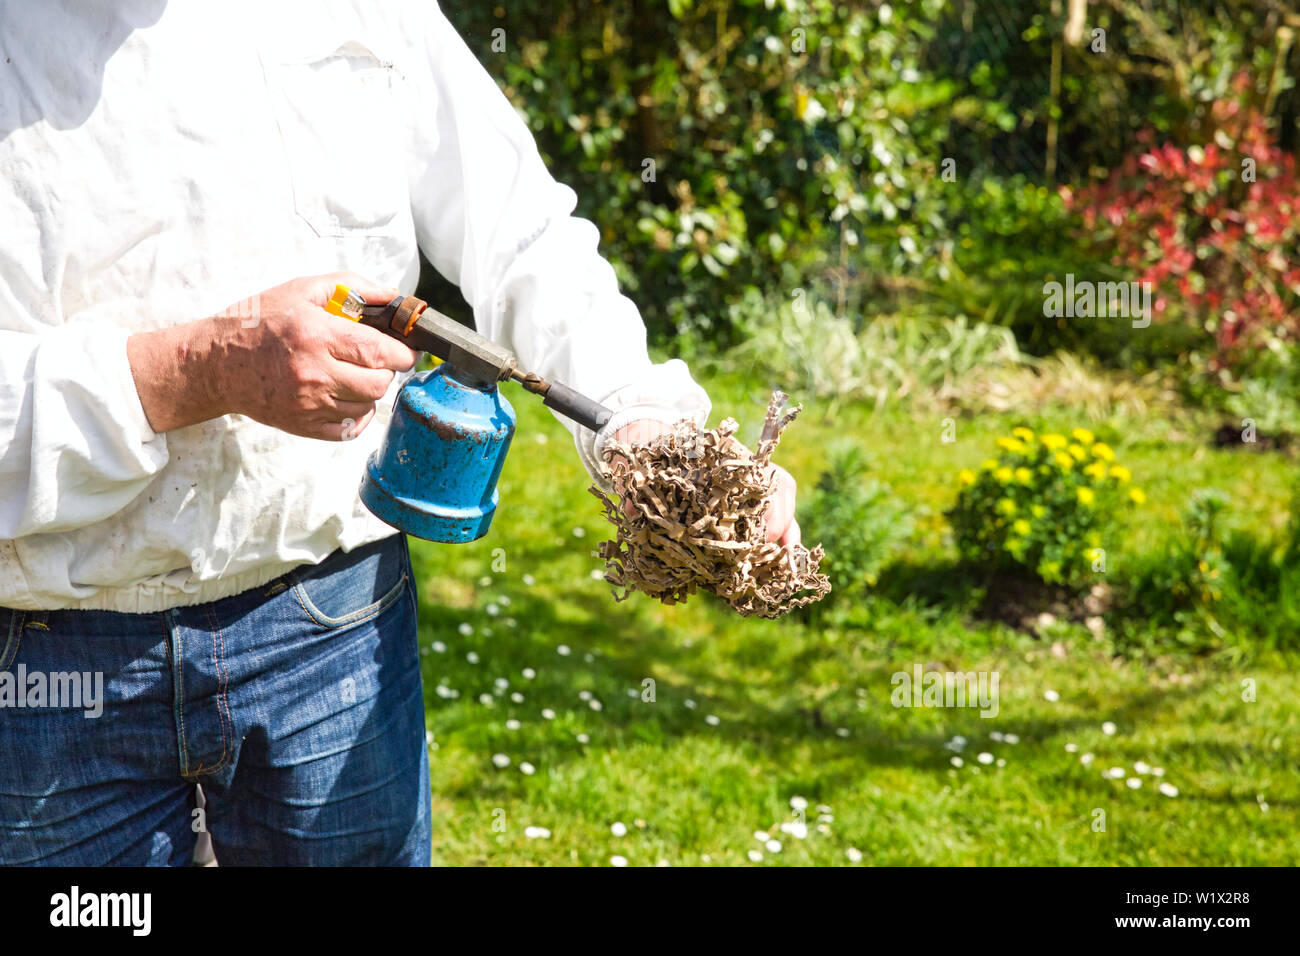 Hands of beekeeper in protective clothing switching on the smoker with lighter and paperboard while standing at apiary - Stock Image